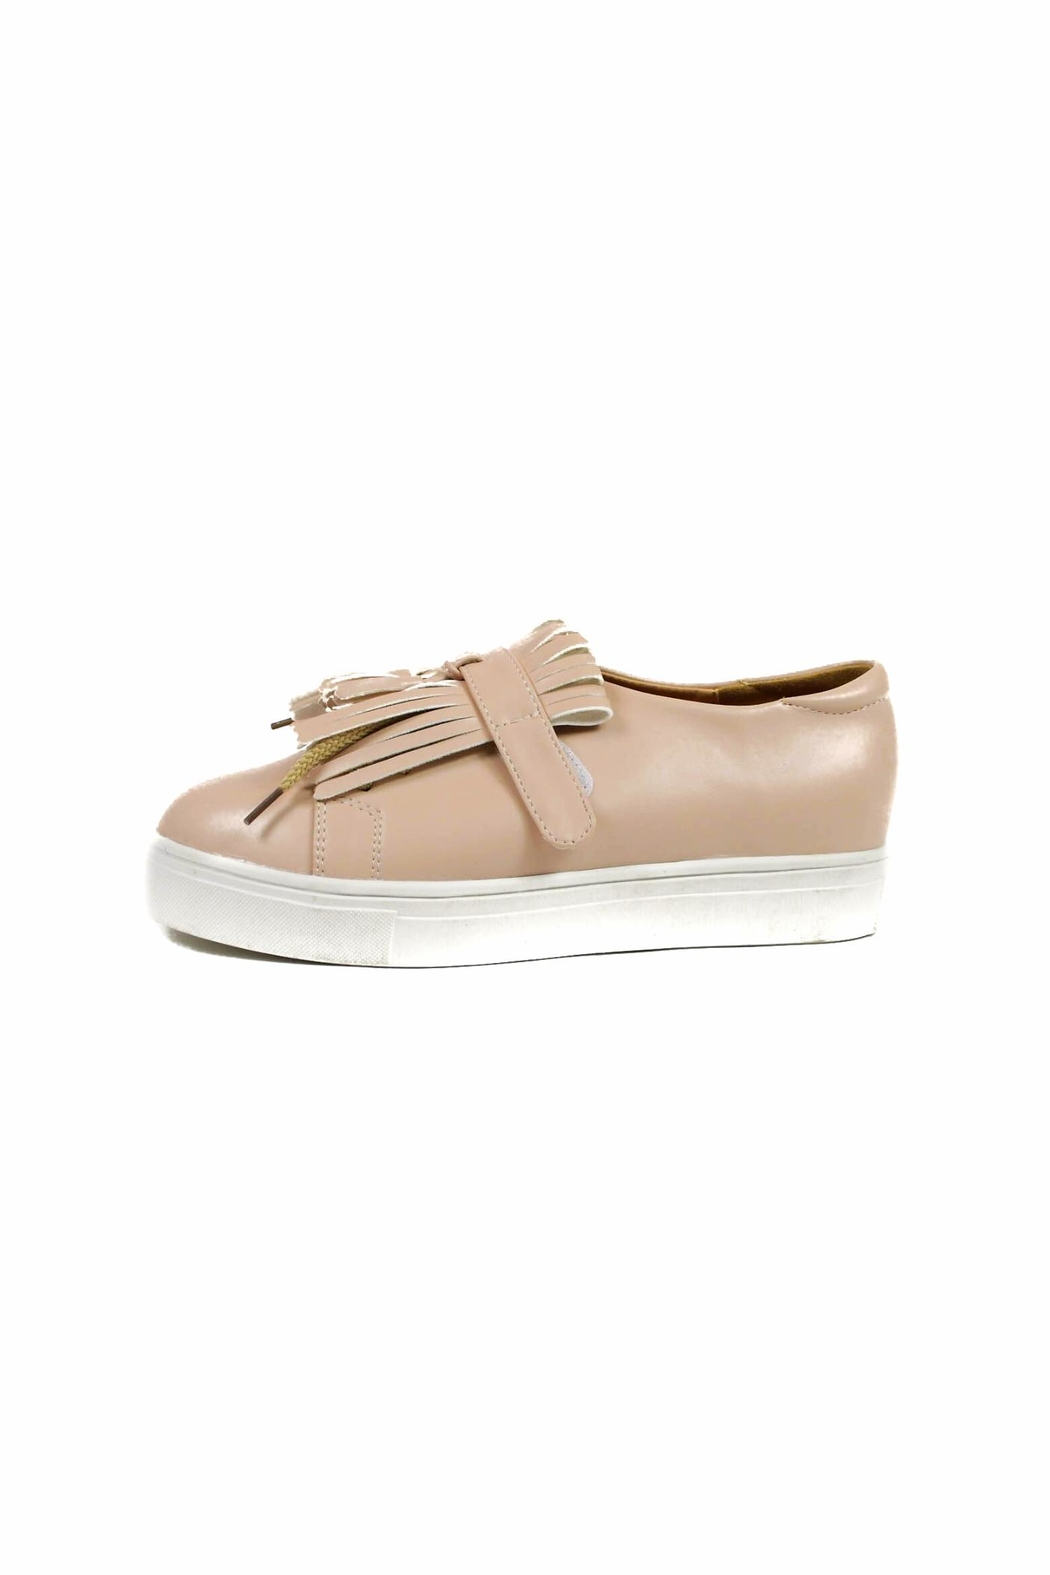 Ana Colina Boutique Fringes Sneakers - Main Image